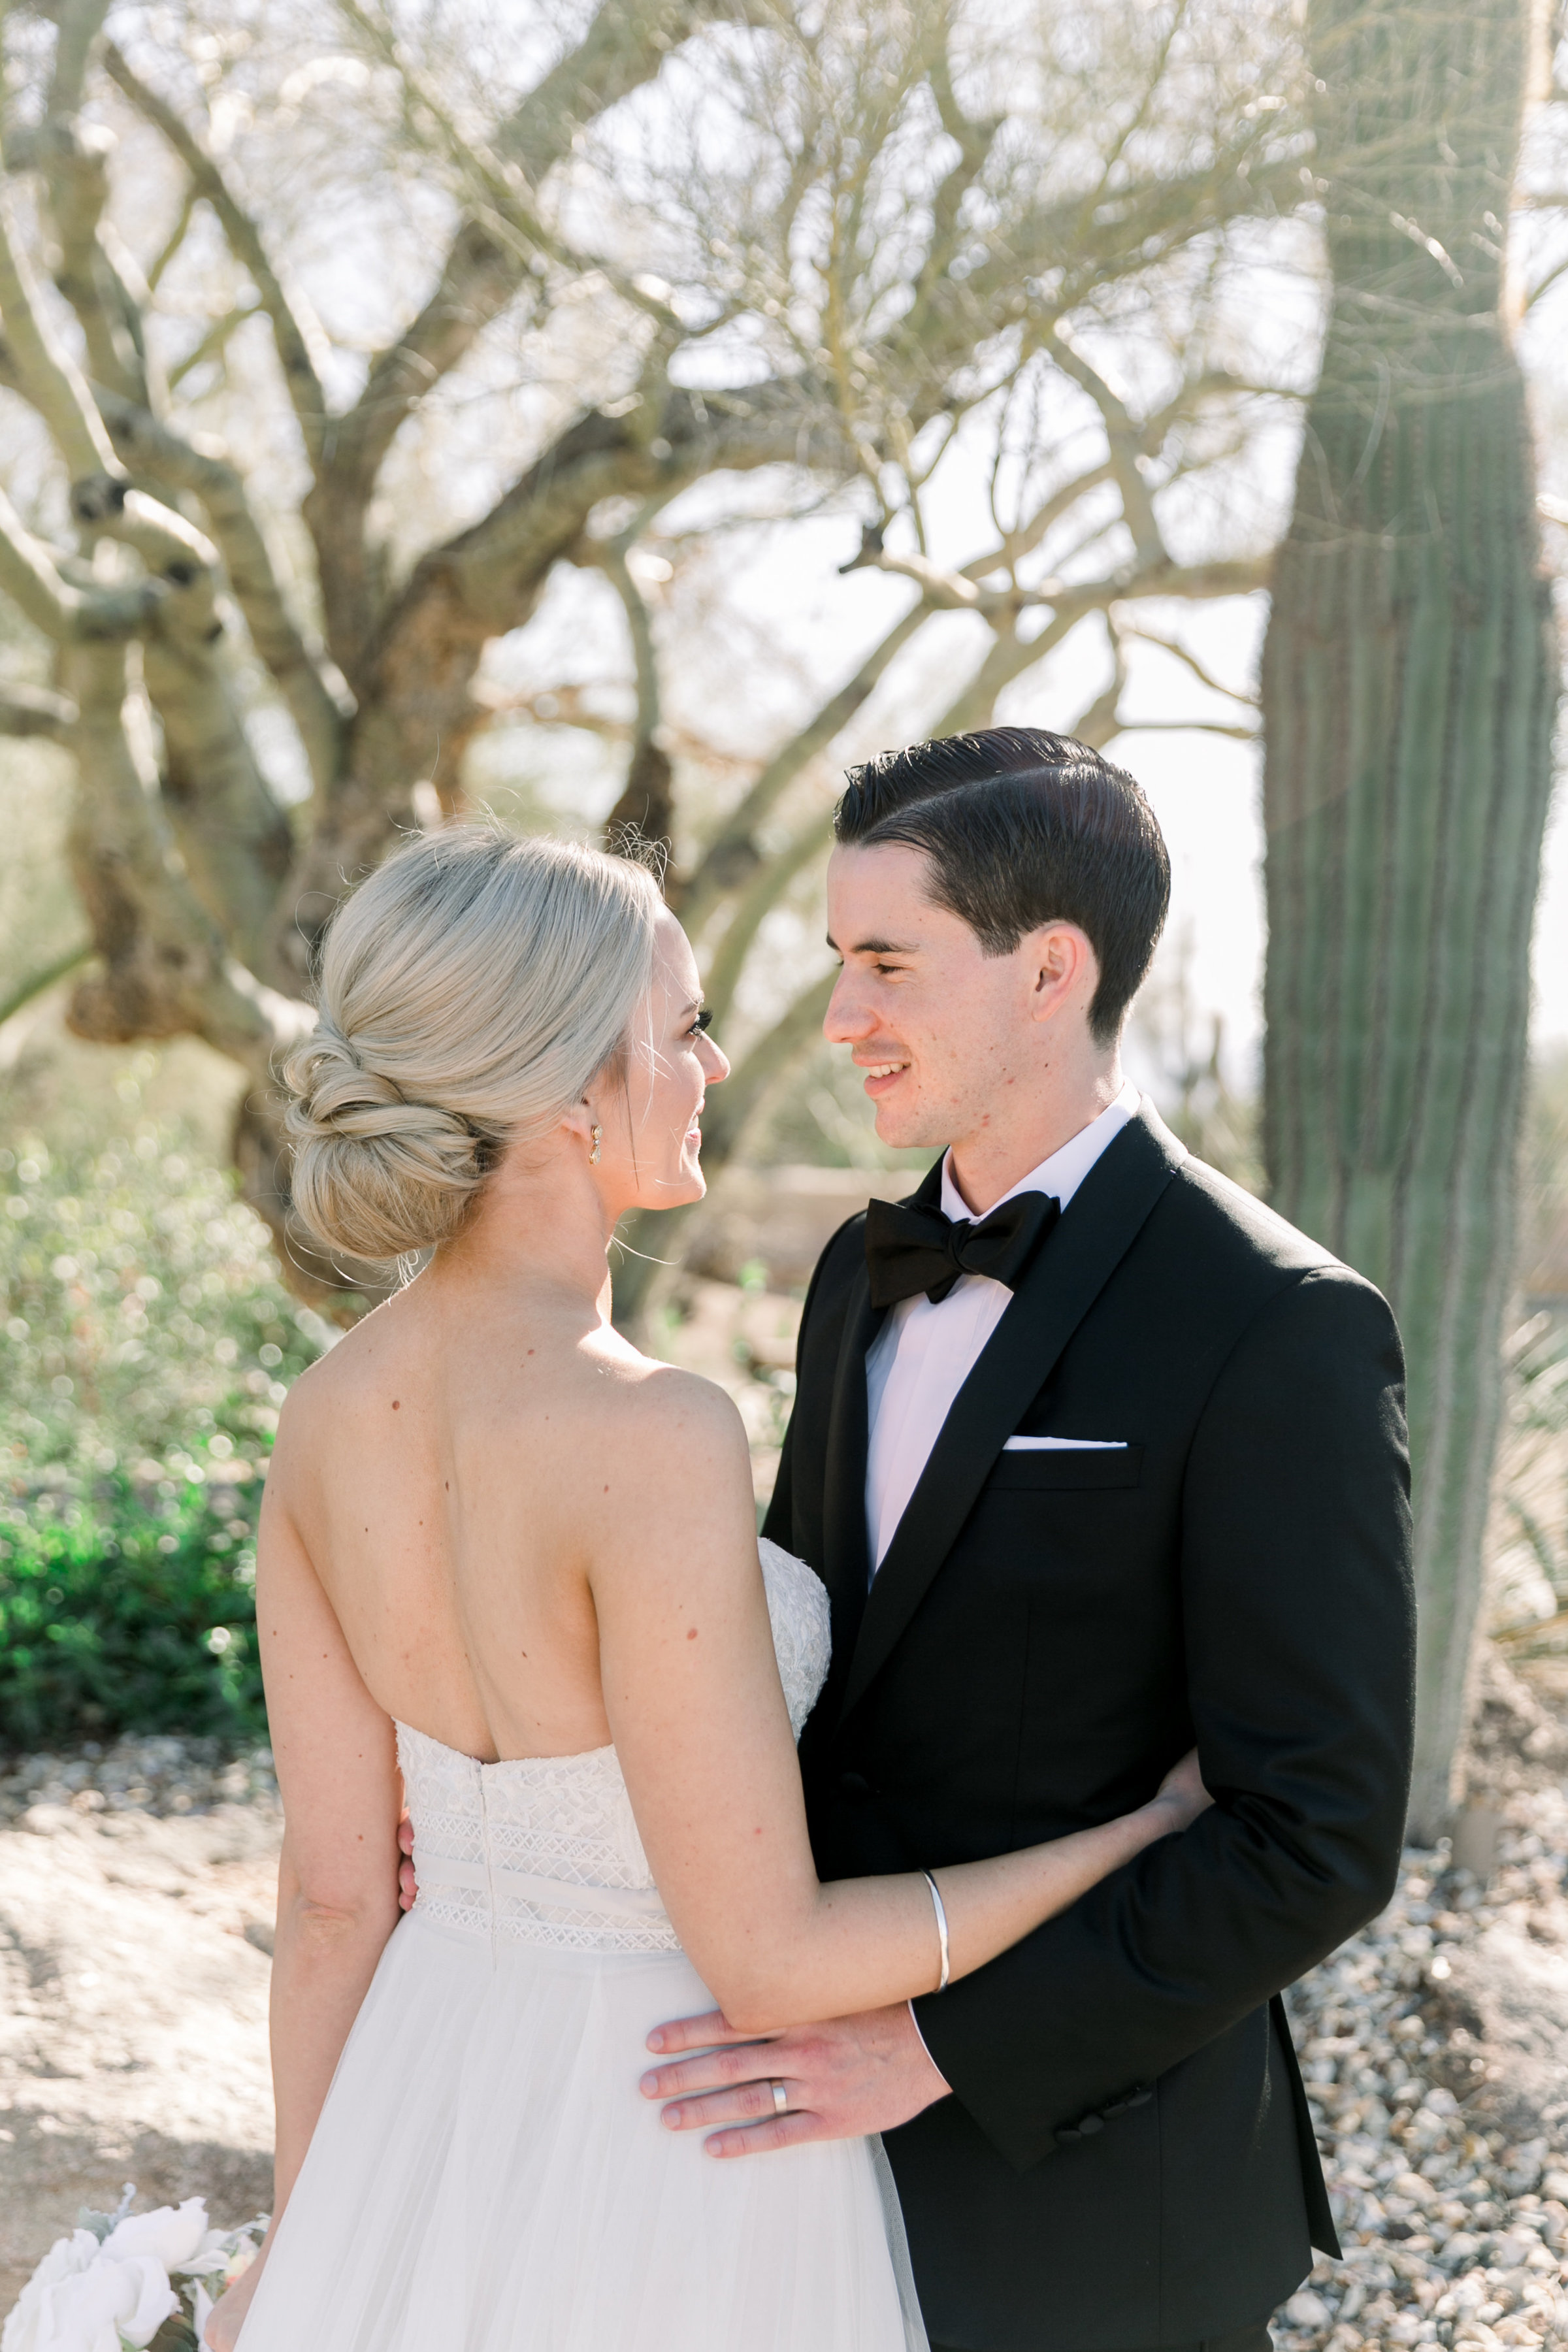 Karlie Colleen Photography - Arizona Wedding at The Troon Scottsdale Country Club - Paige & Shane -213